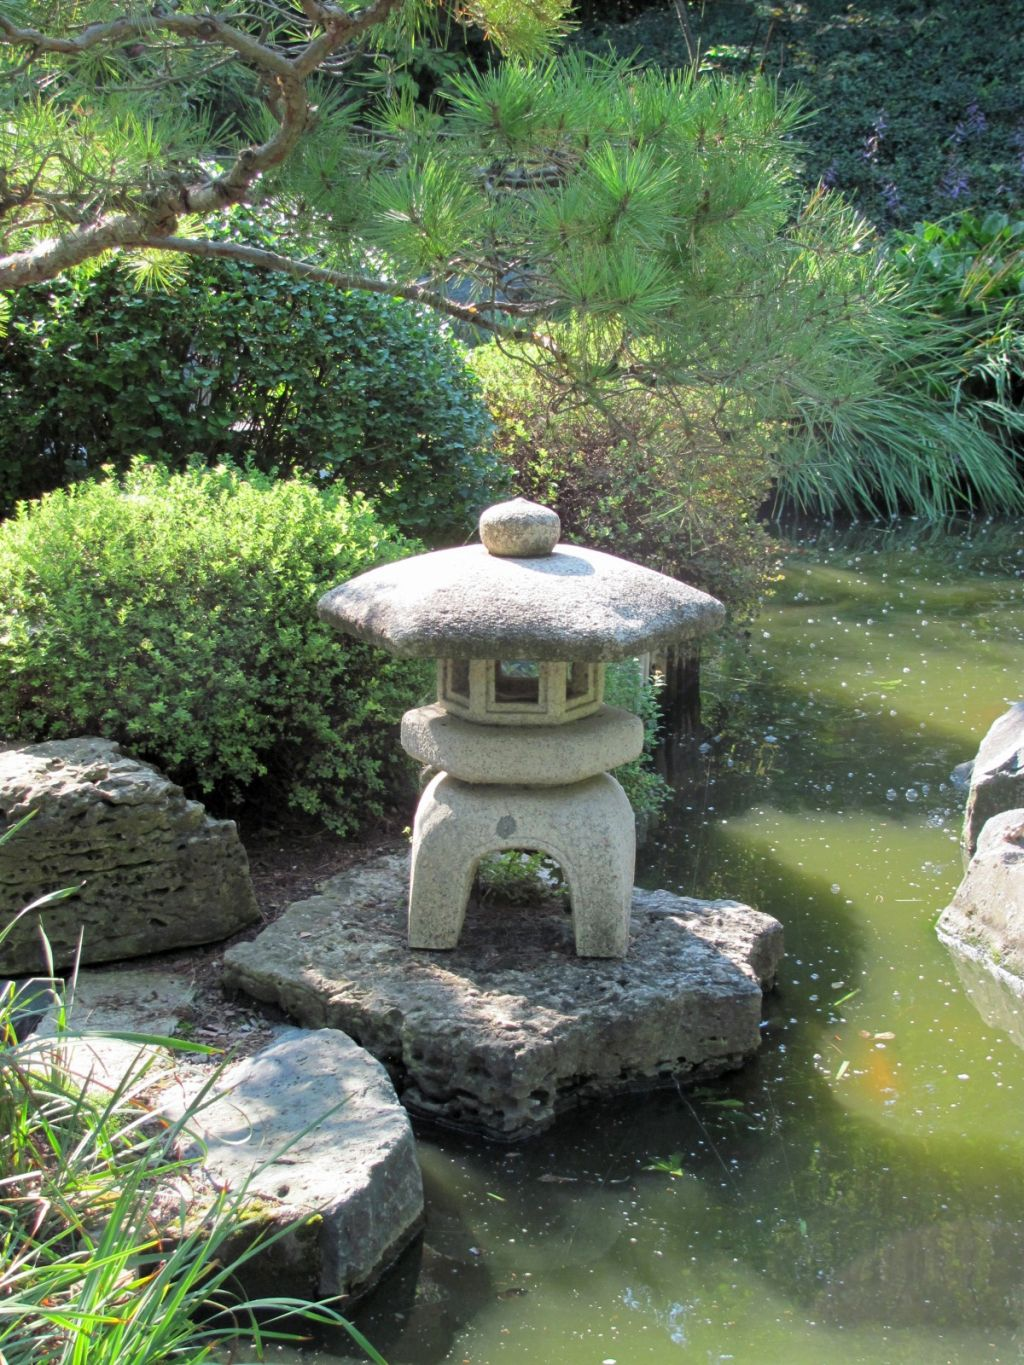 Japanese Garden Designs japanese garden design ideas screenshot Gallery For Japanese Garden Designs For Small Spaces